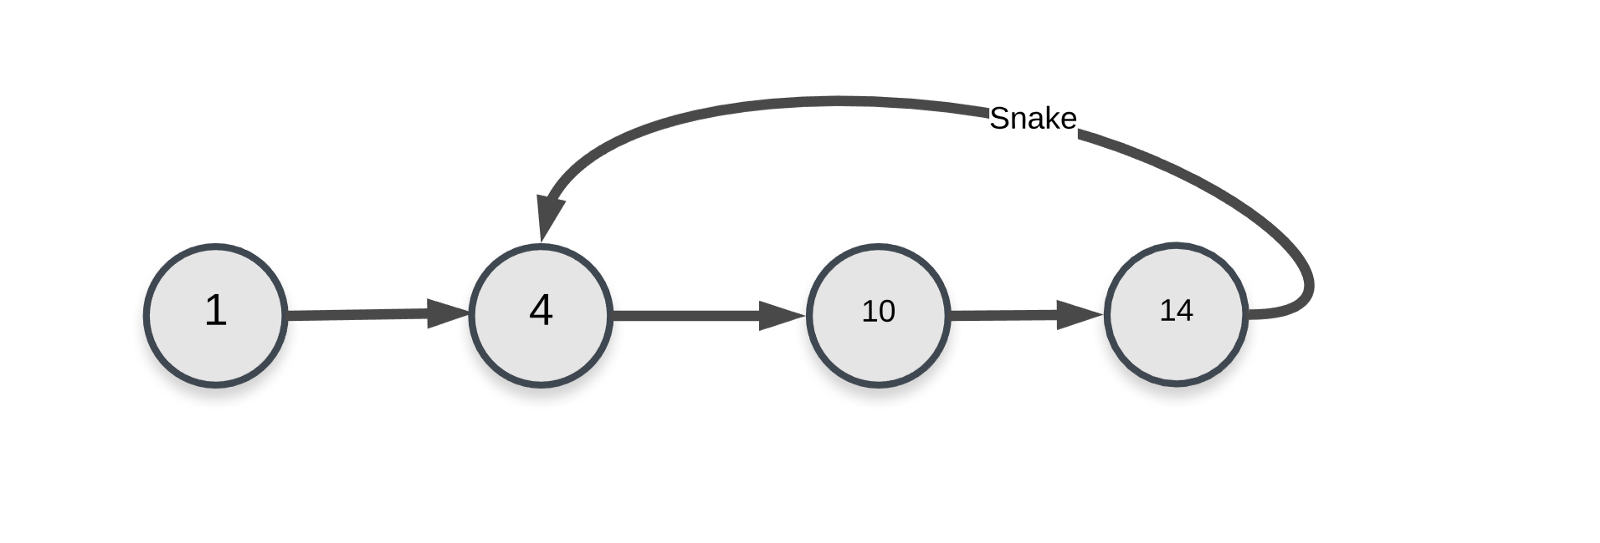 The Perfect Programming Interview Problem Freecodecamporg Consider State Diagram Below And Implement It In Ladder Logic You Loop Introduced By Snakes Graph Representation